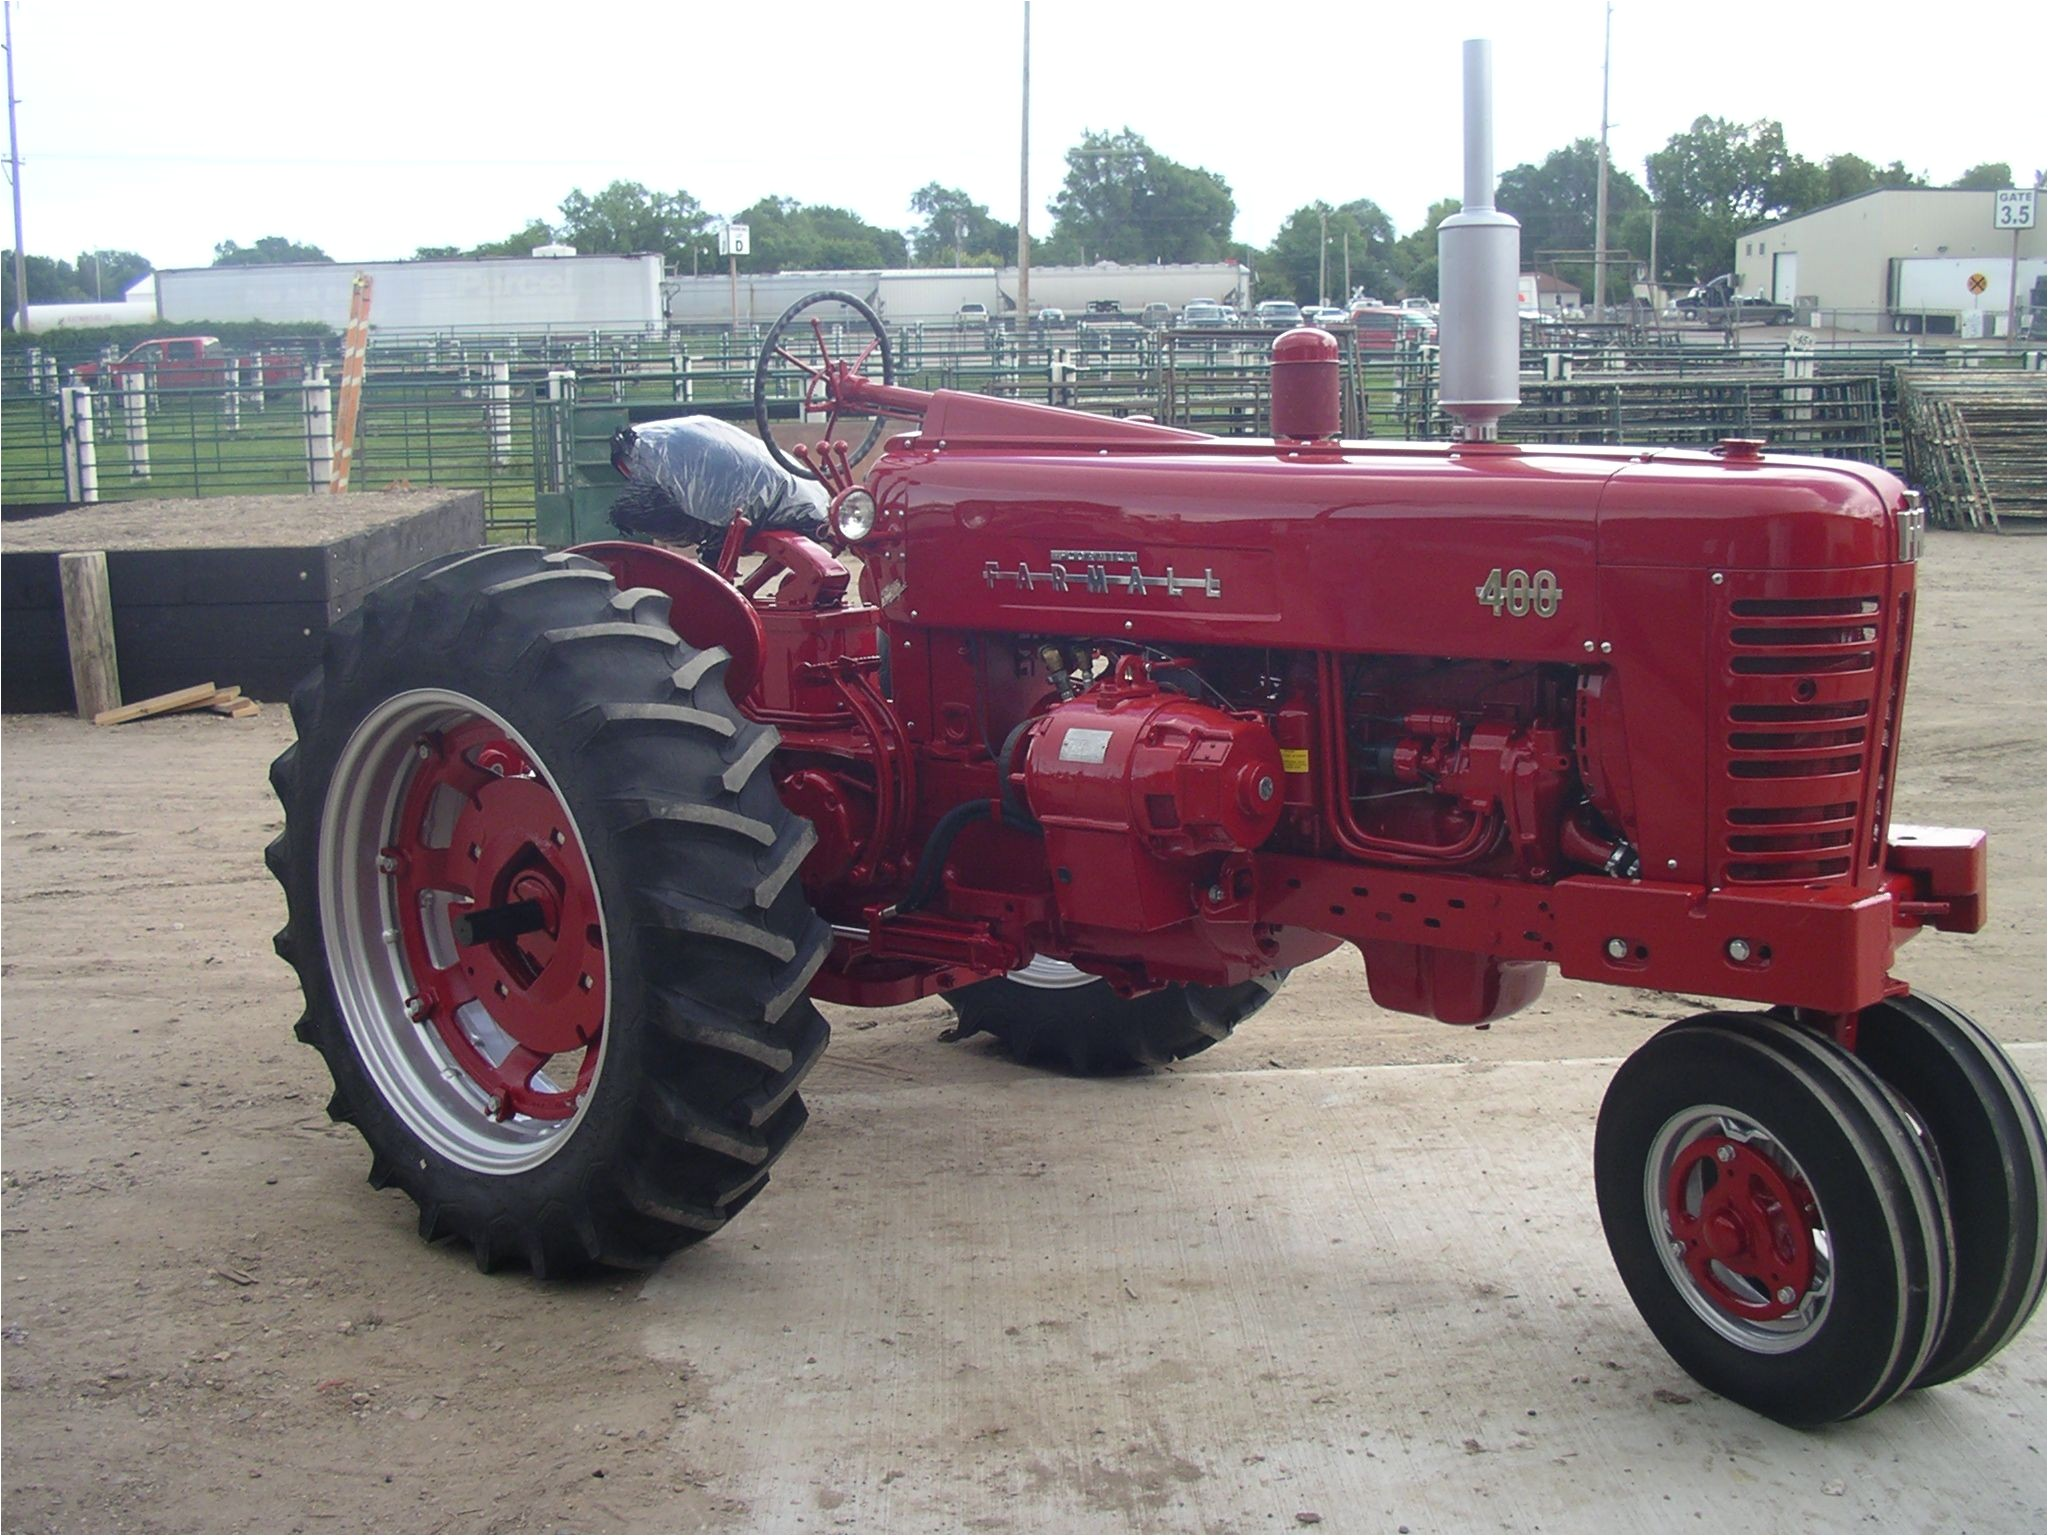 1955 farmall 400 with an optional electrall used to generate electrical power